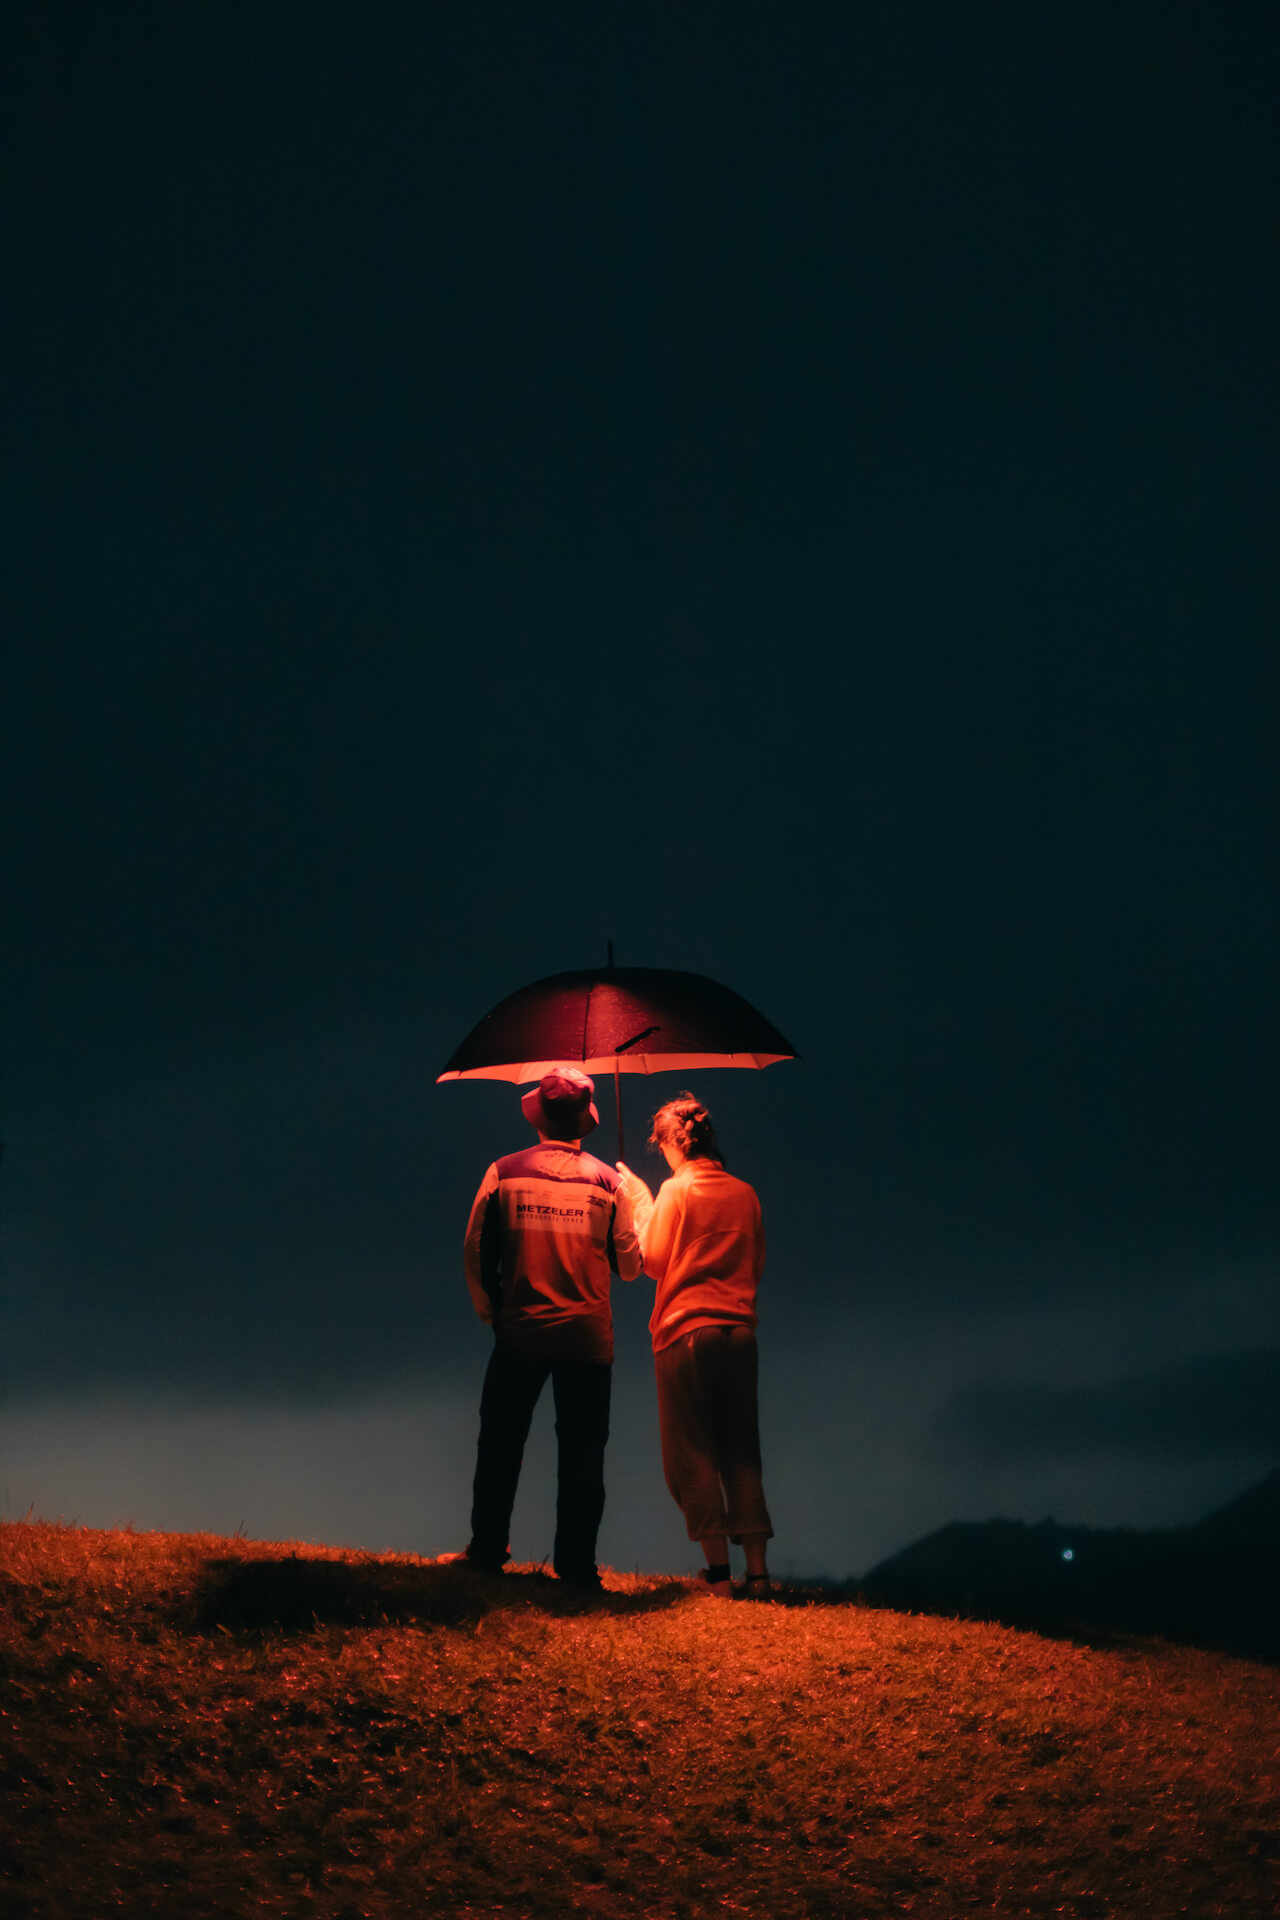 Mike Dee and Denise Gonsalves, under a lit up umbrella, observing a cloudy night sky